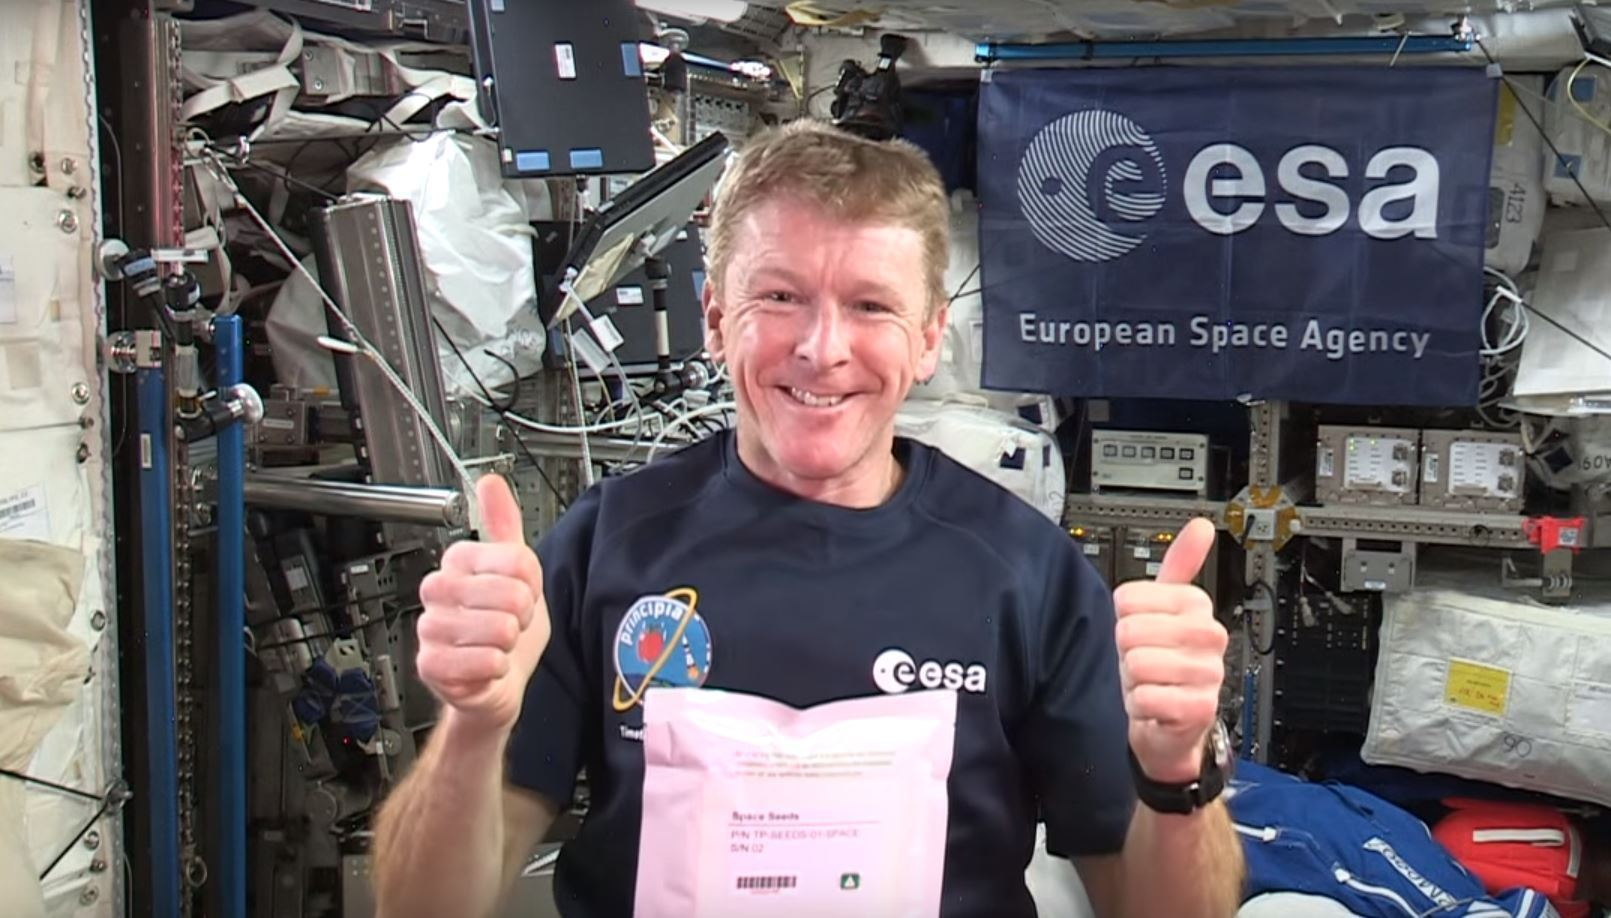 Tim Peake beamed a video message to thousands of schools asking them to grow the space seeds.